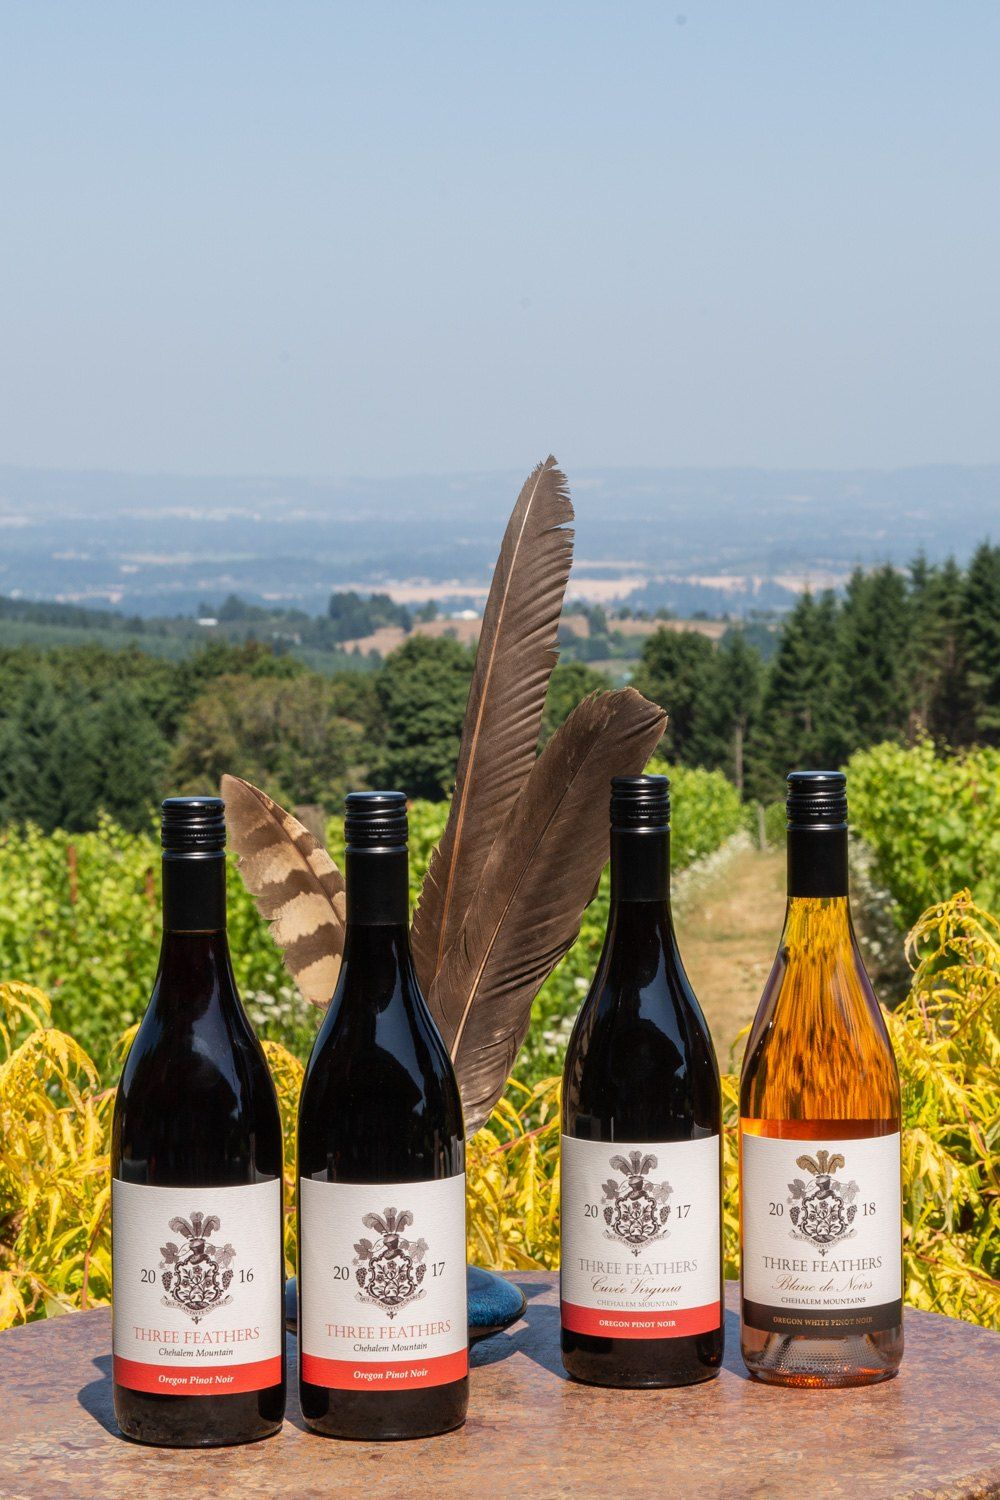 Three Feathers mixed wine selection vintages 2016, 2017 and 2018.